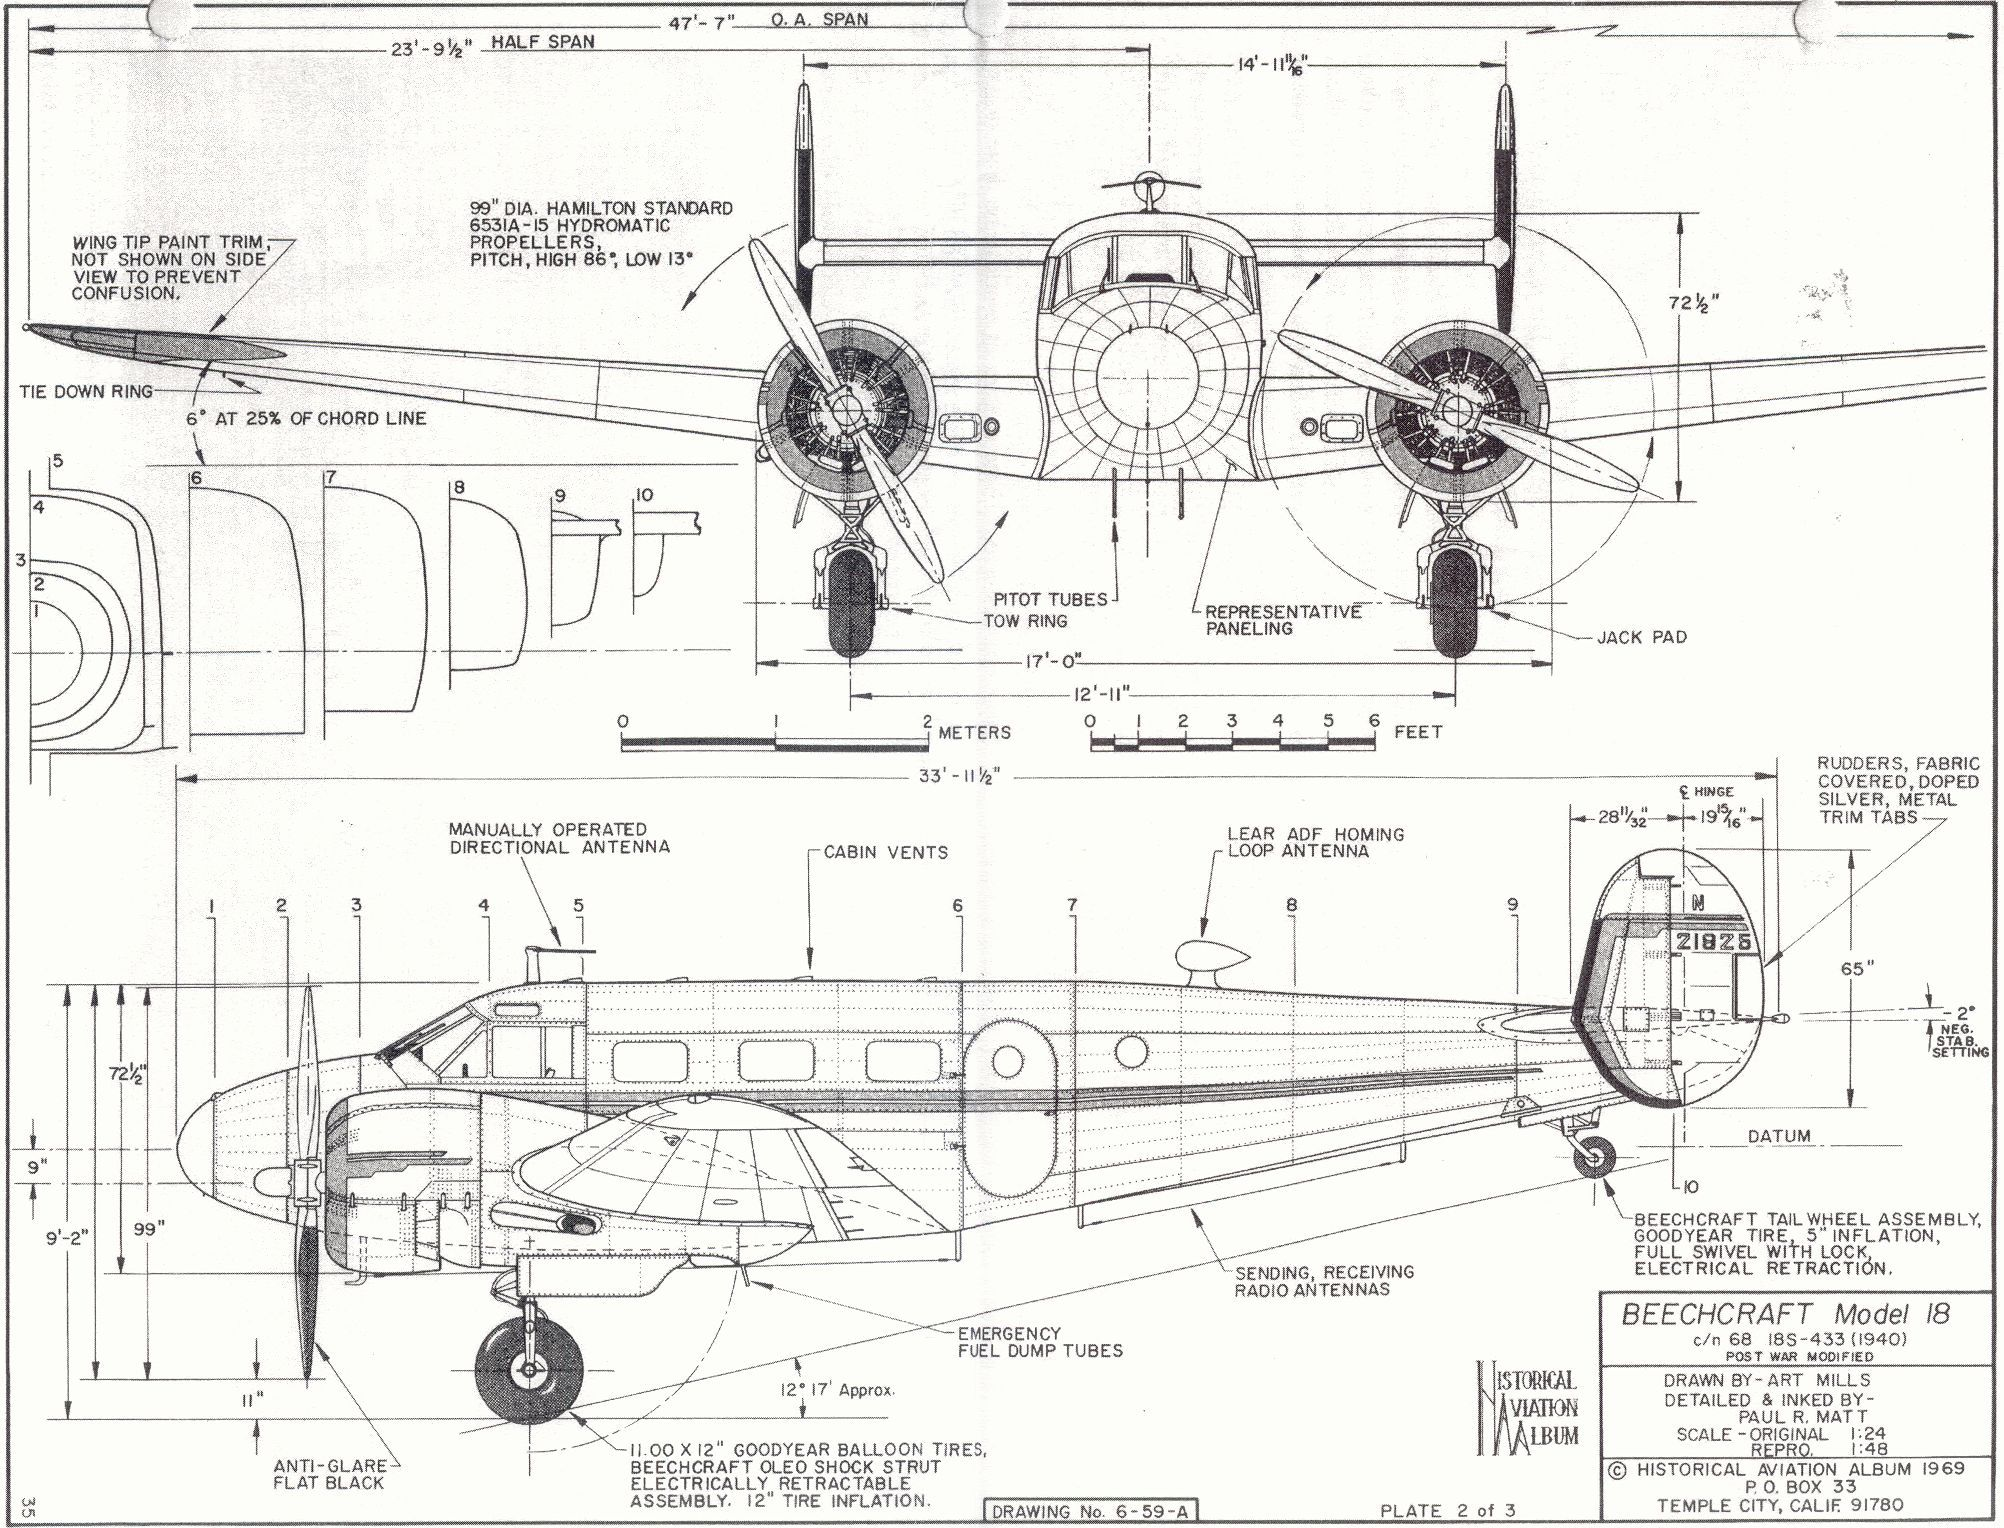 pin by d on schematics airplane drawing rc plane plans airplaneold planes dioramas [ 2004 x 1528 Pixel ]